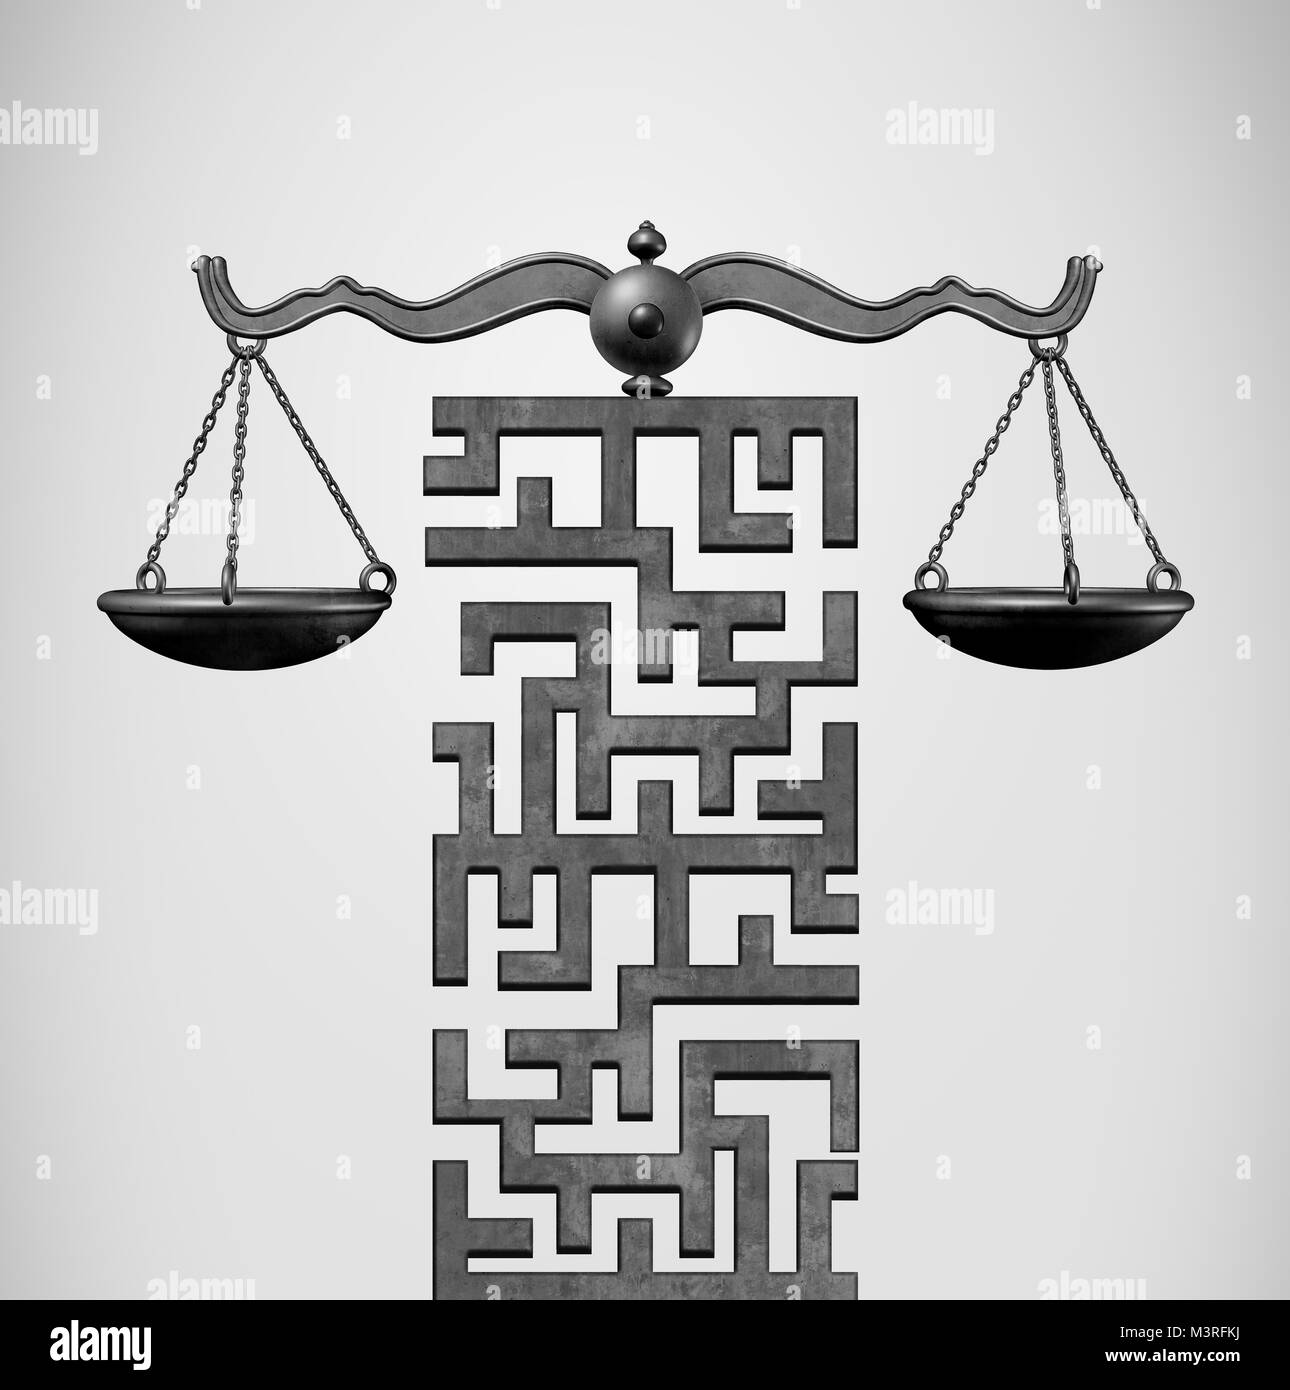 Justice Solution and legal direction concept as a justice scale shaped as a maze or labyrinth as a 3D illustration. - Stock Image